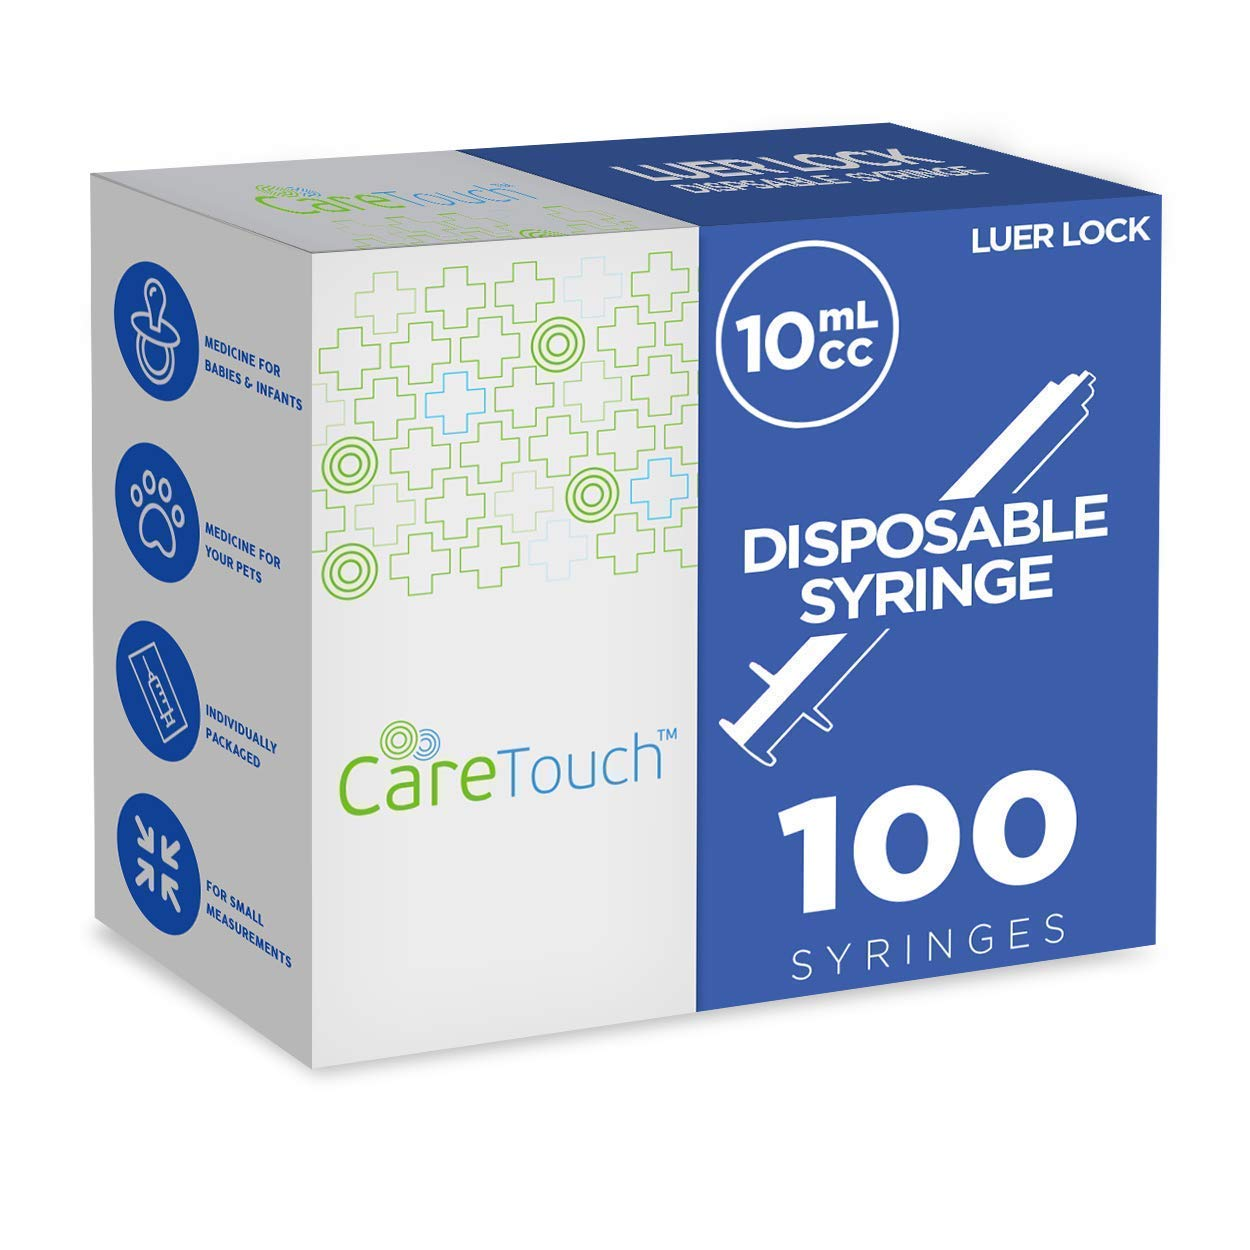 10ml Syringe Only with Luer Lock Tip - 100 Syringes Without a Needle by Care Touch - Great for Medicine, Feeding Tubes, and Home Care